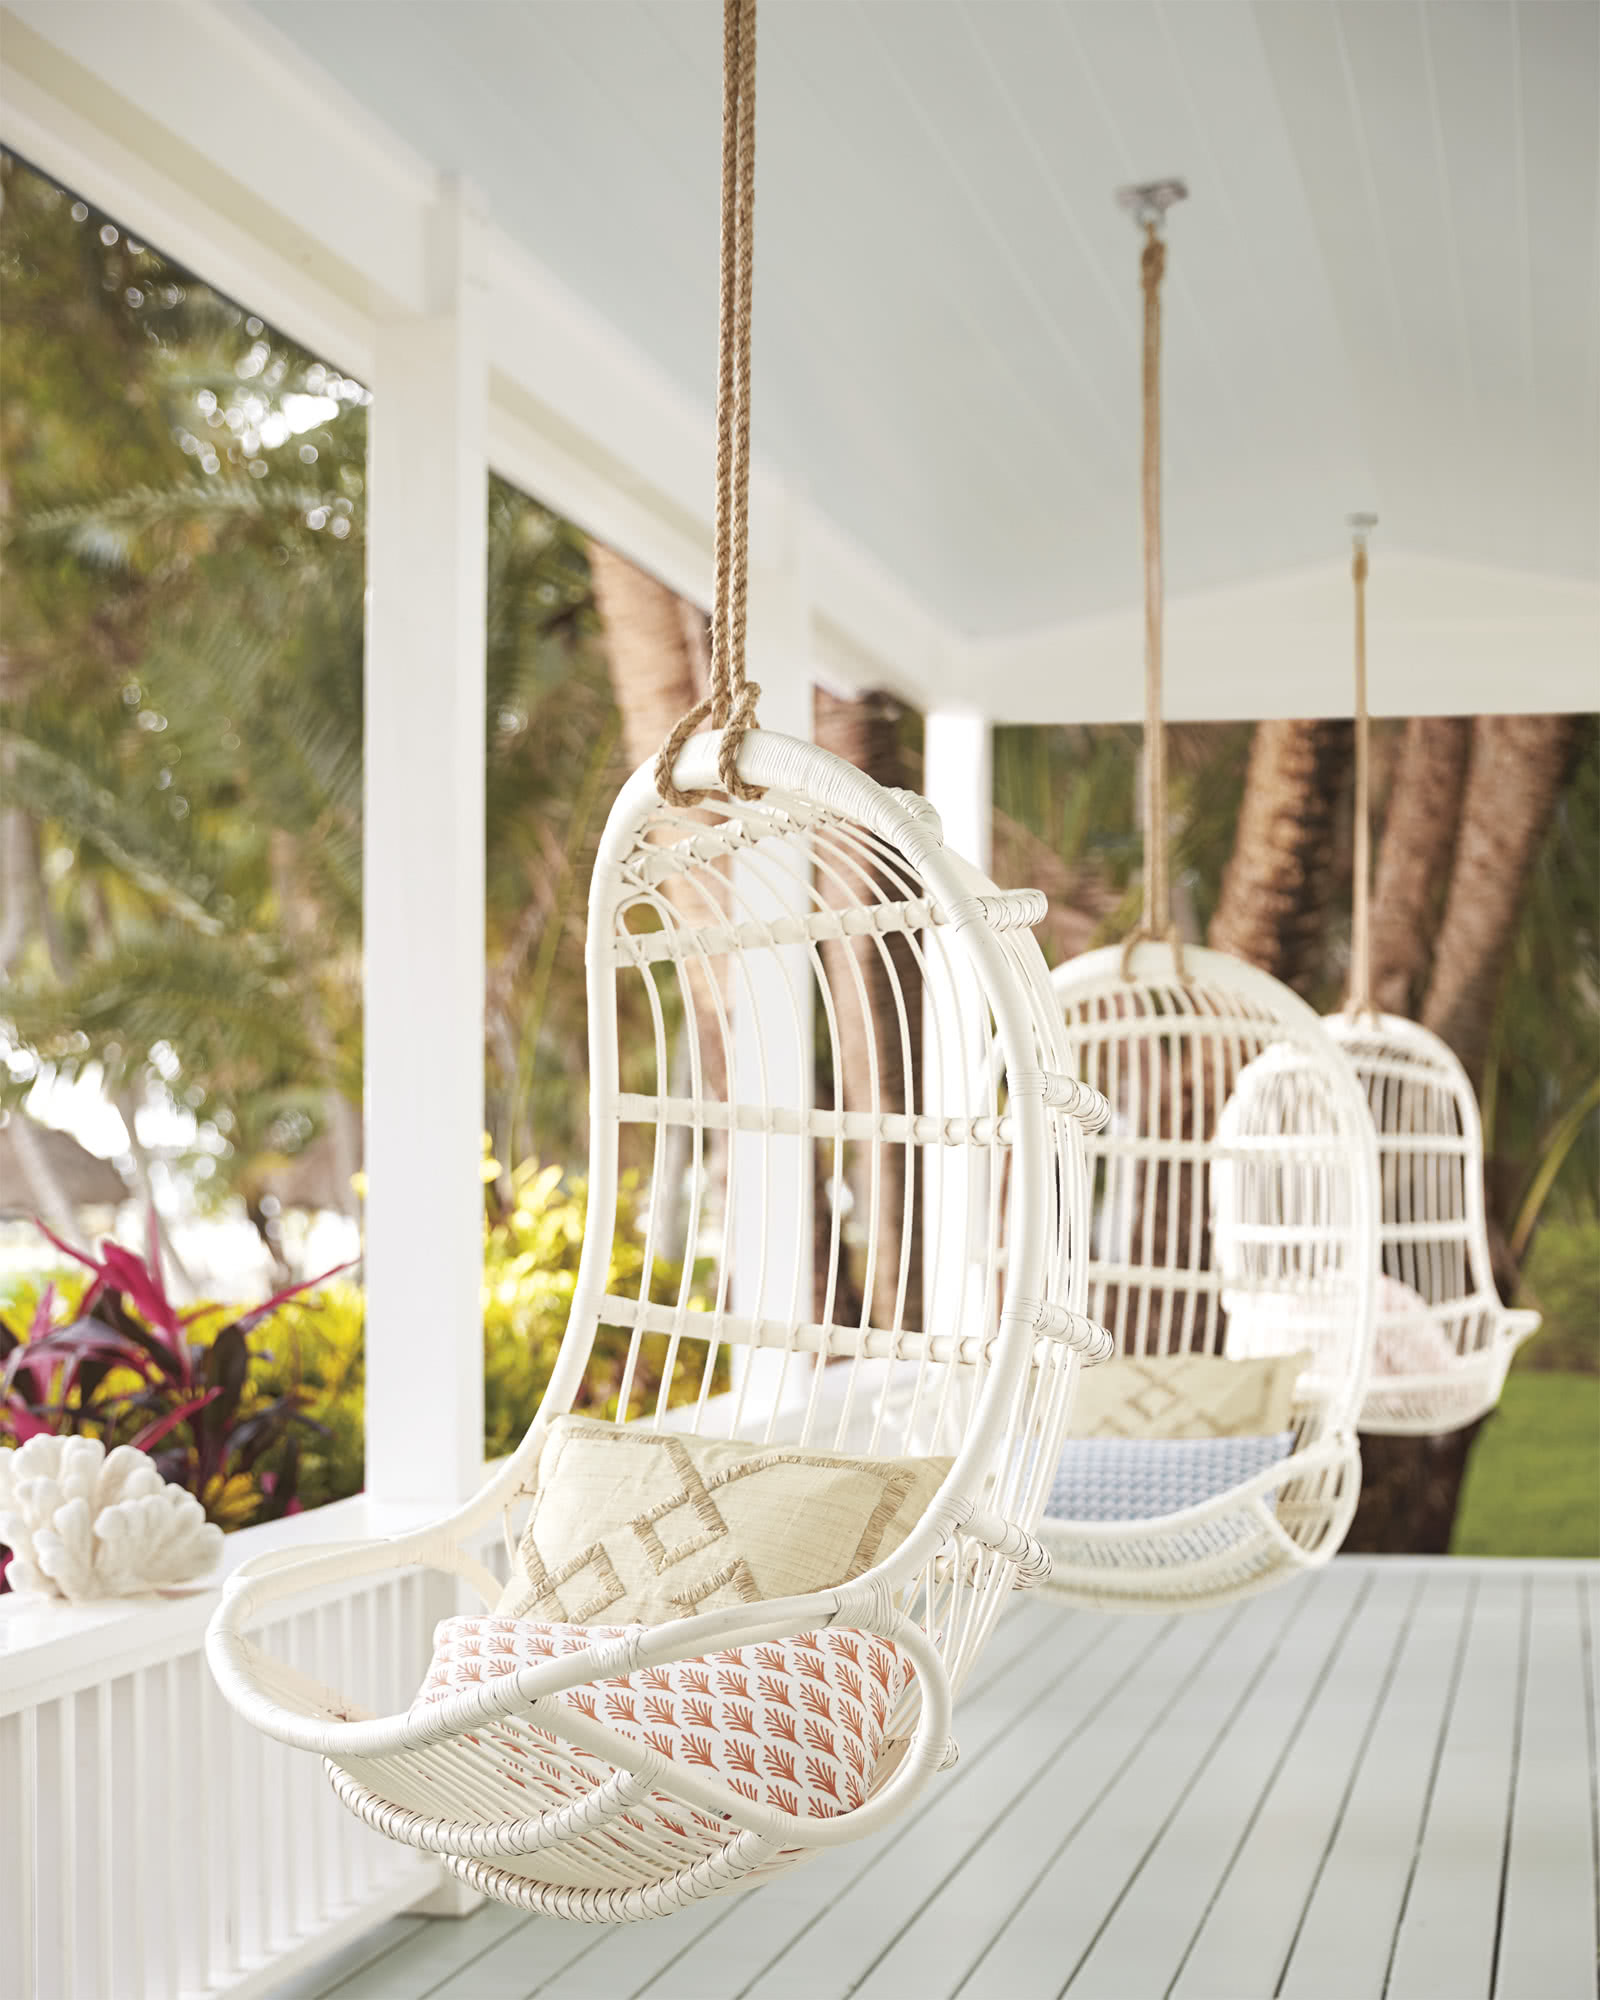 hanging chair next garden table rattan chairs serena and lily